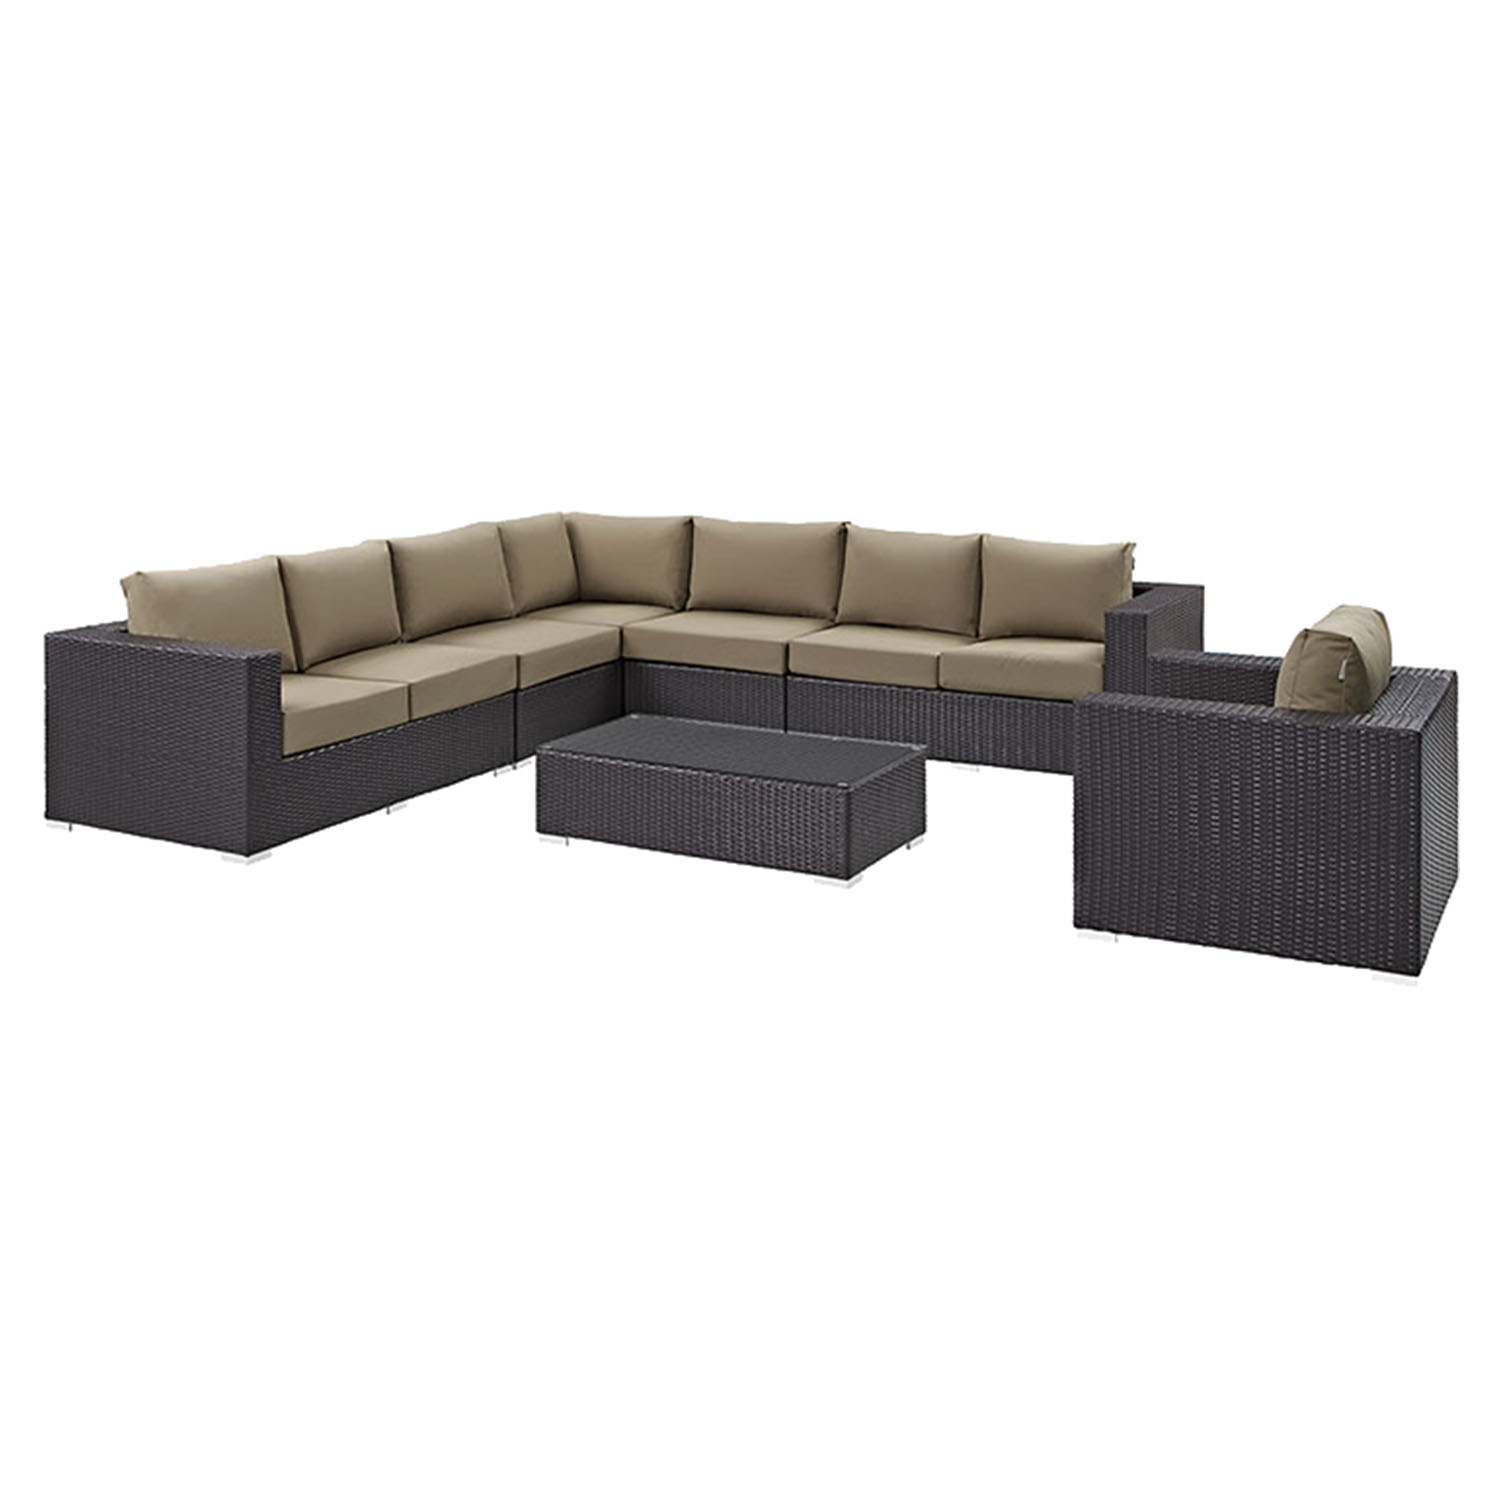 Convene 7 Pieces Patio Sectional Set - EEI-2162-EXP-SET